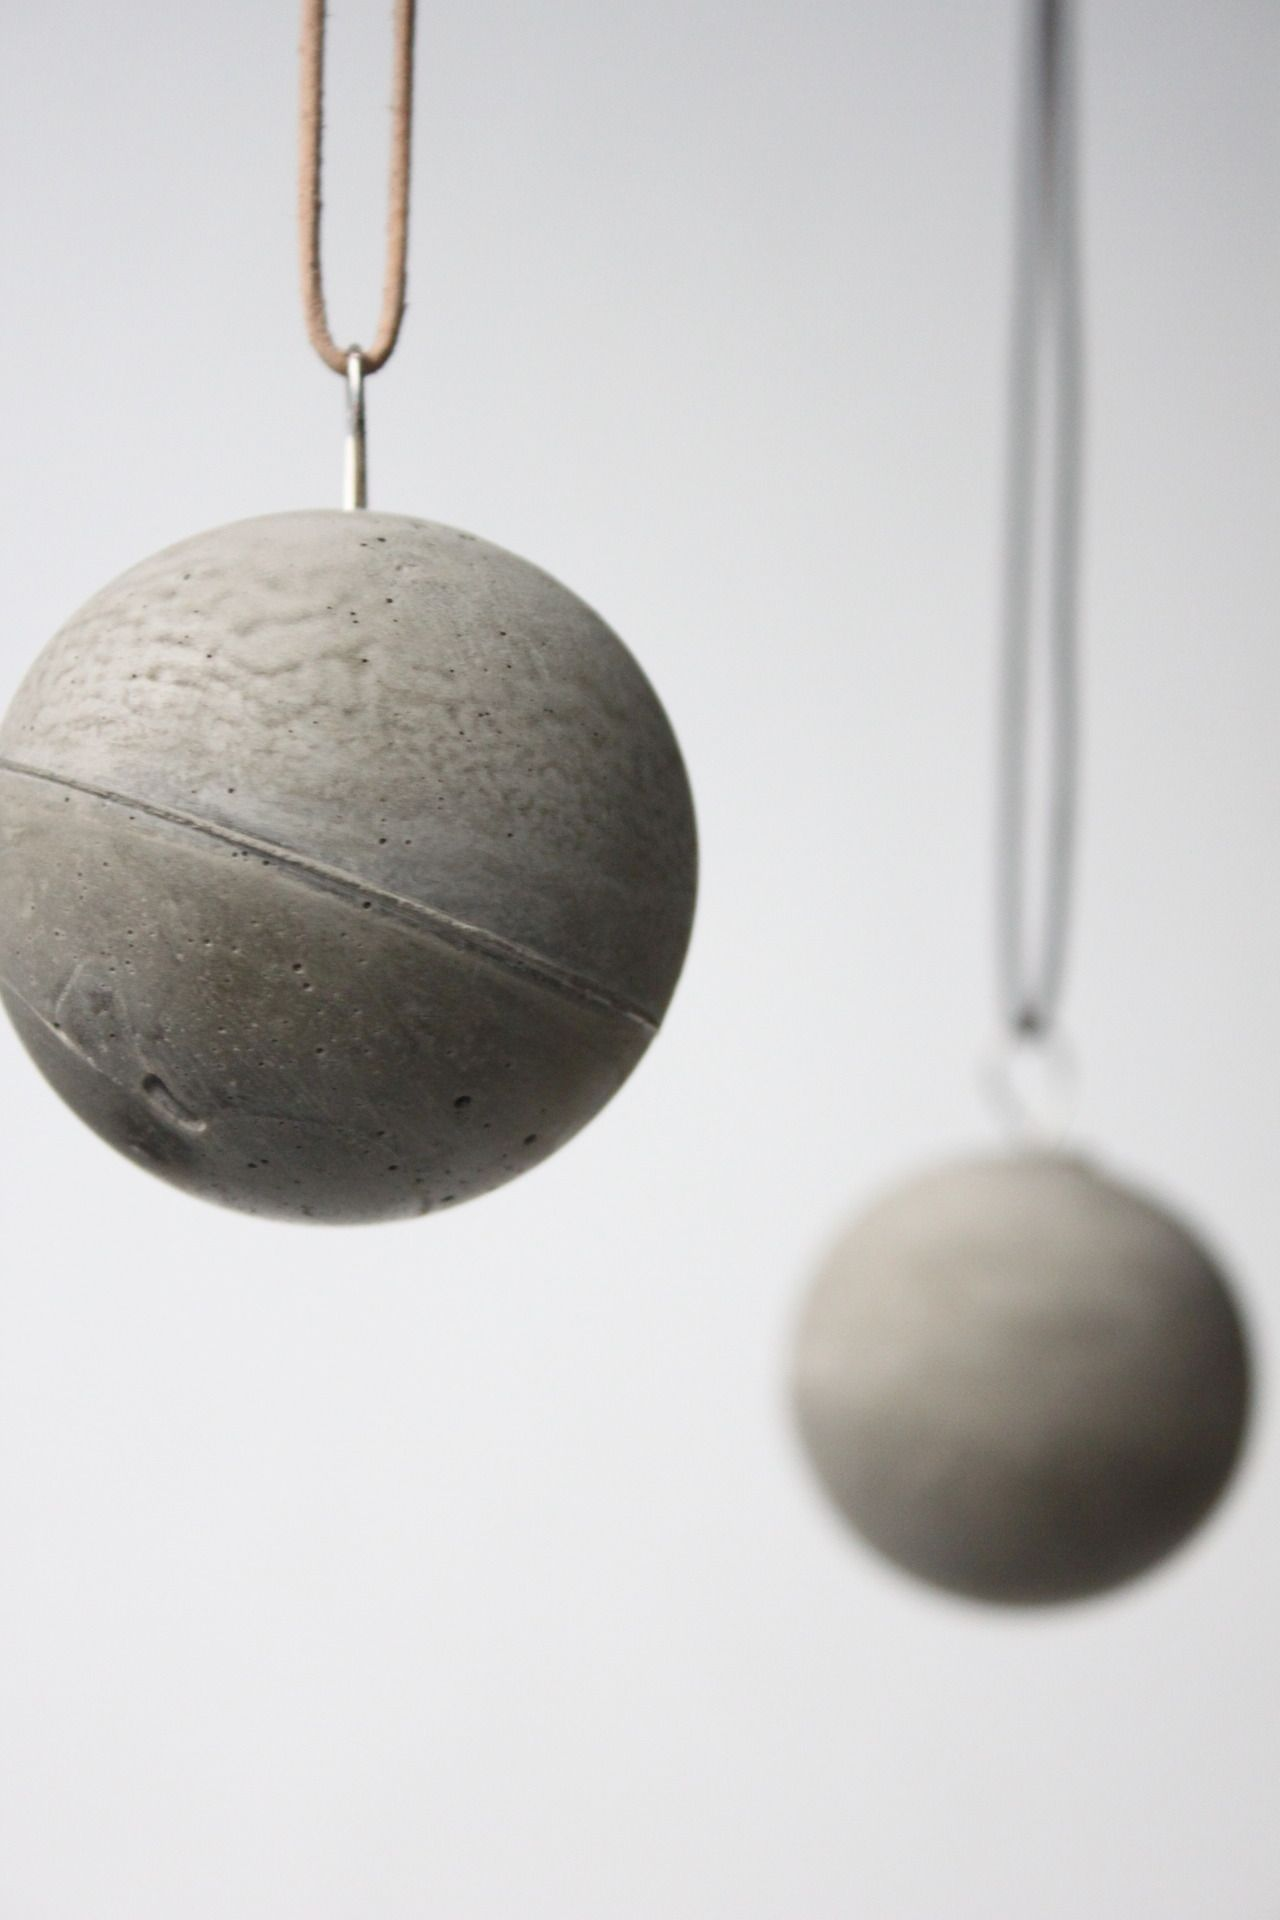 concrete. Good idea. Could mold into any shape to make cute vintage necklaces.